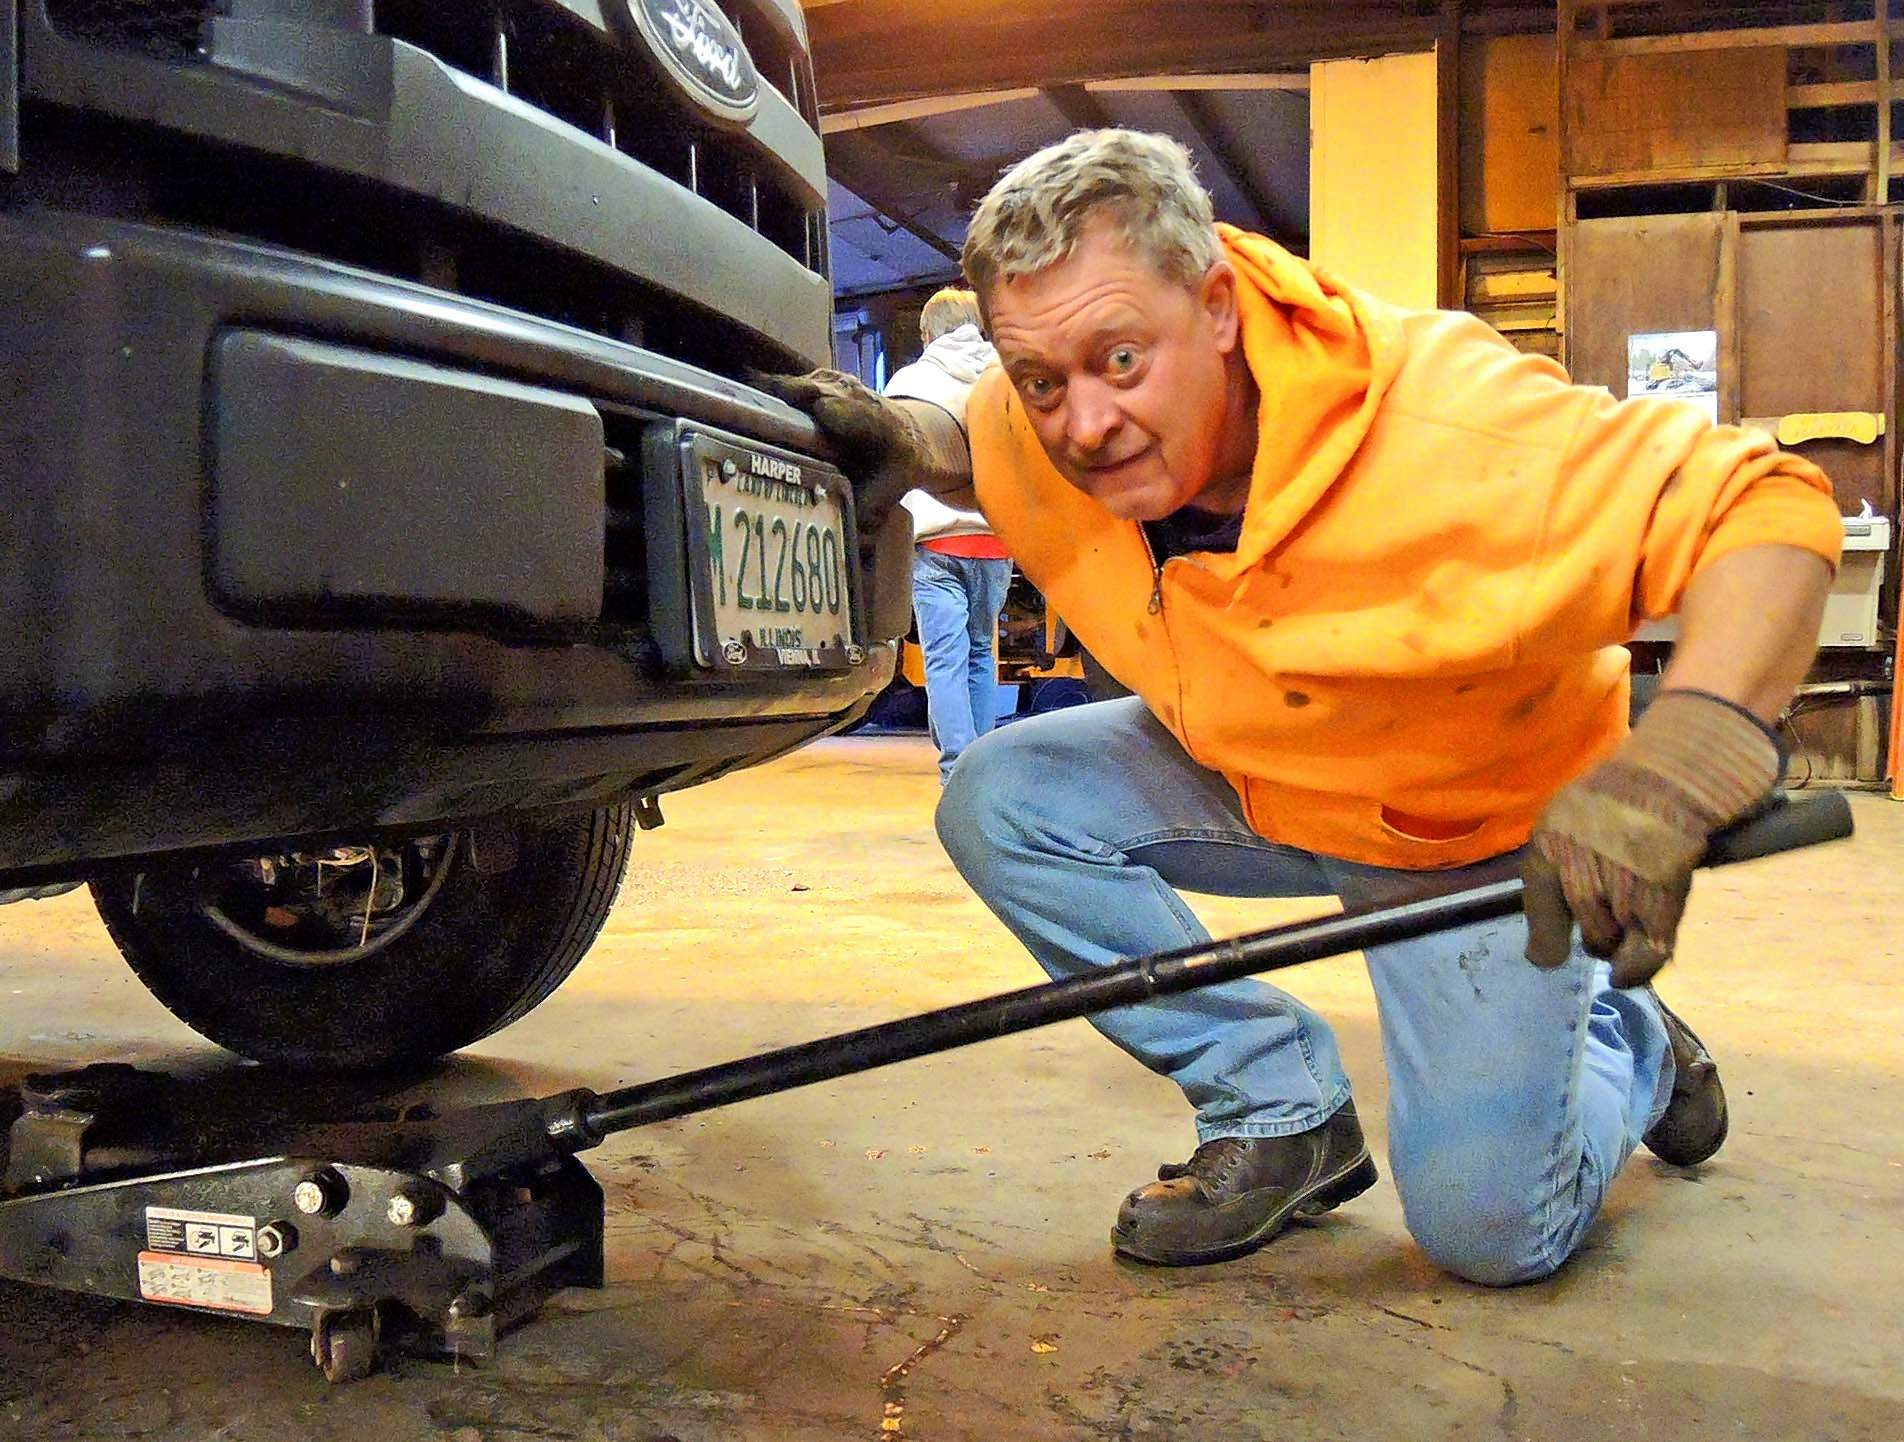 Senior maintenance worker Kenny Murphy prepares to change the oil in the foreman's pickup truck Thursday morning.